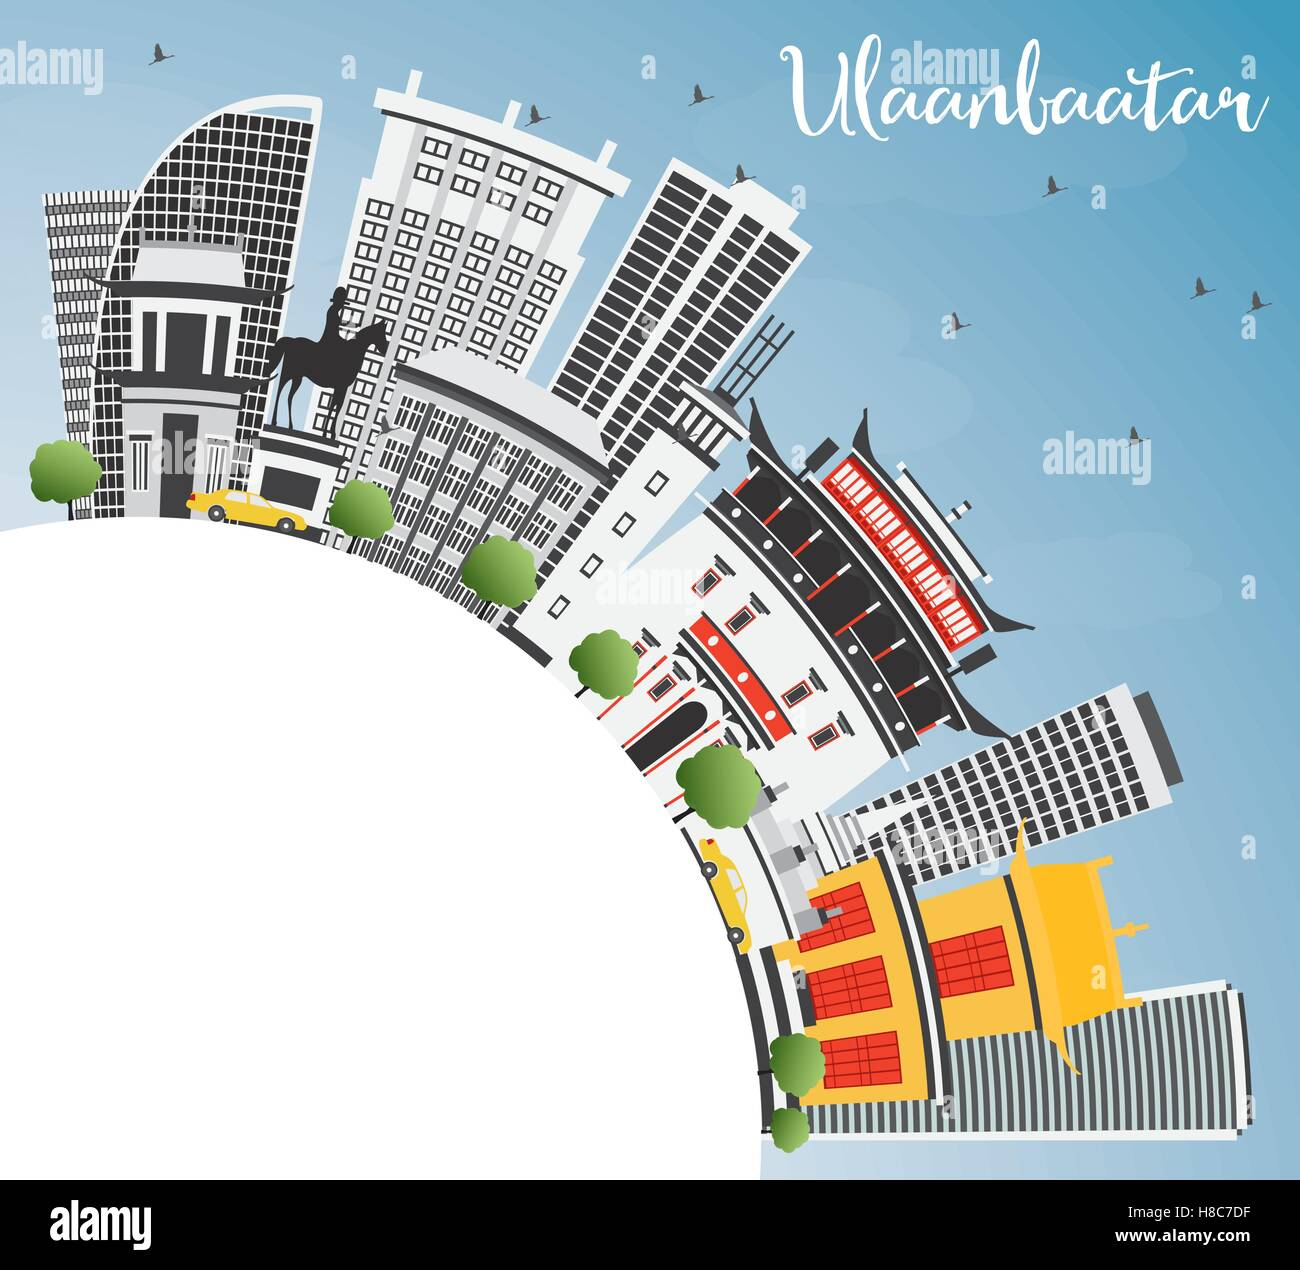 Ulaanbaatar Skyline with Gray Buildings, Blue Sky and Copy Space. Vector Illustration. Business Travel and Tourism - Stock Vector